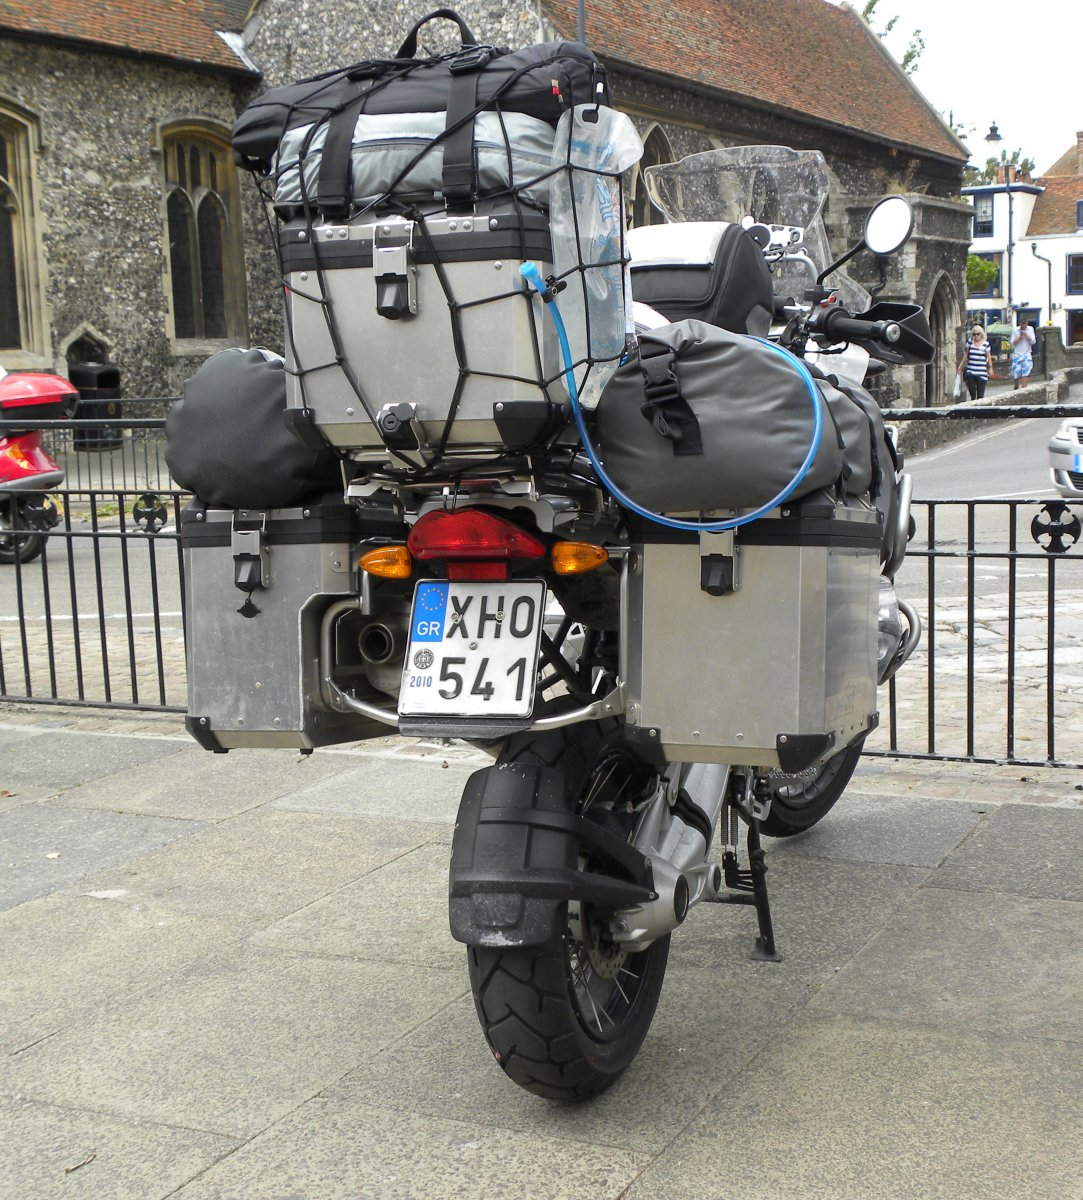 BMW R1200GS images #8269